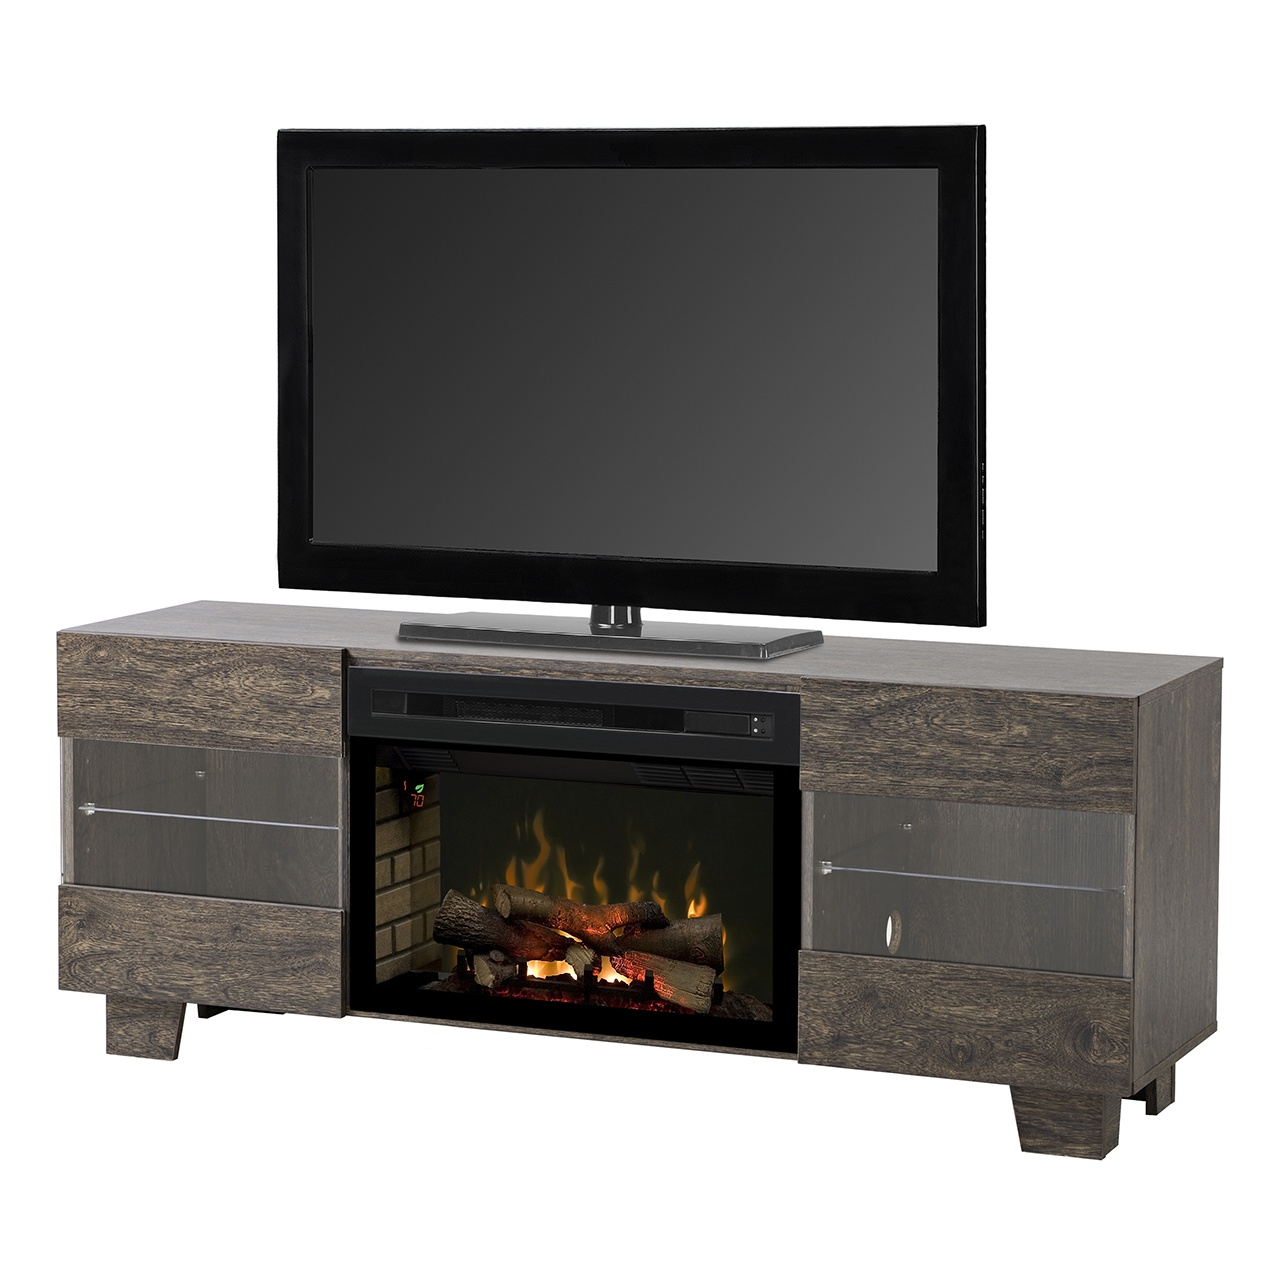 Electric Fireplaces Dimplex Dimplex Max Gds25ld 1651eb Electric Fireplace Media